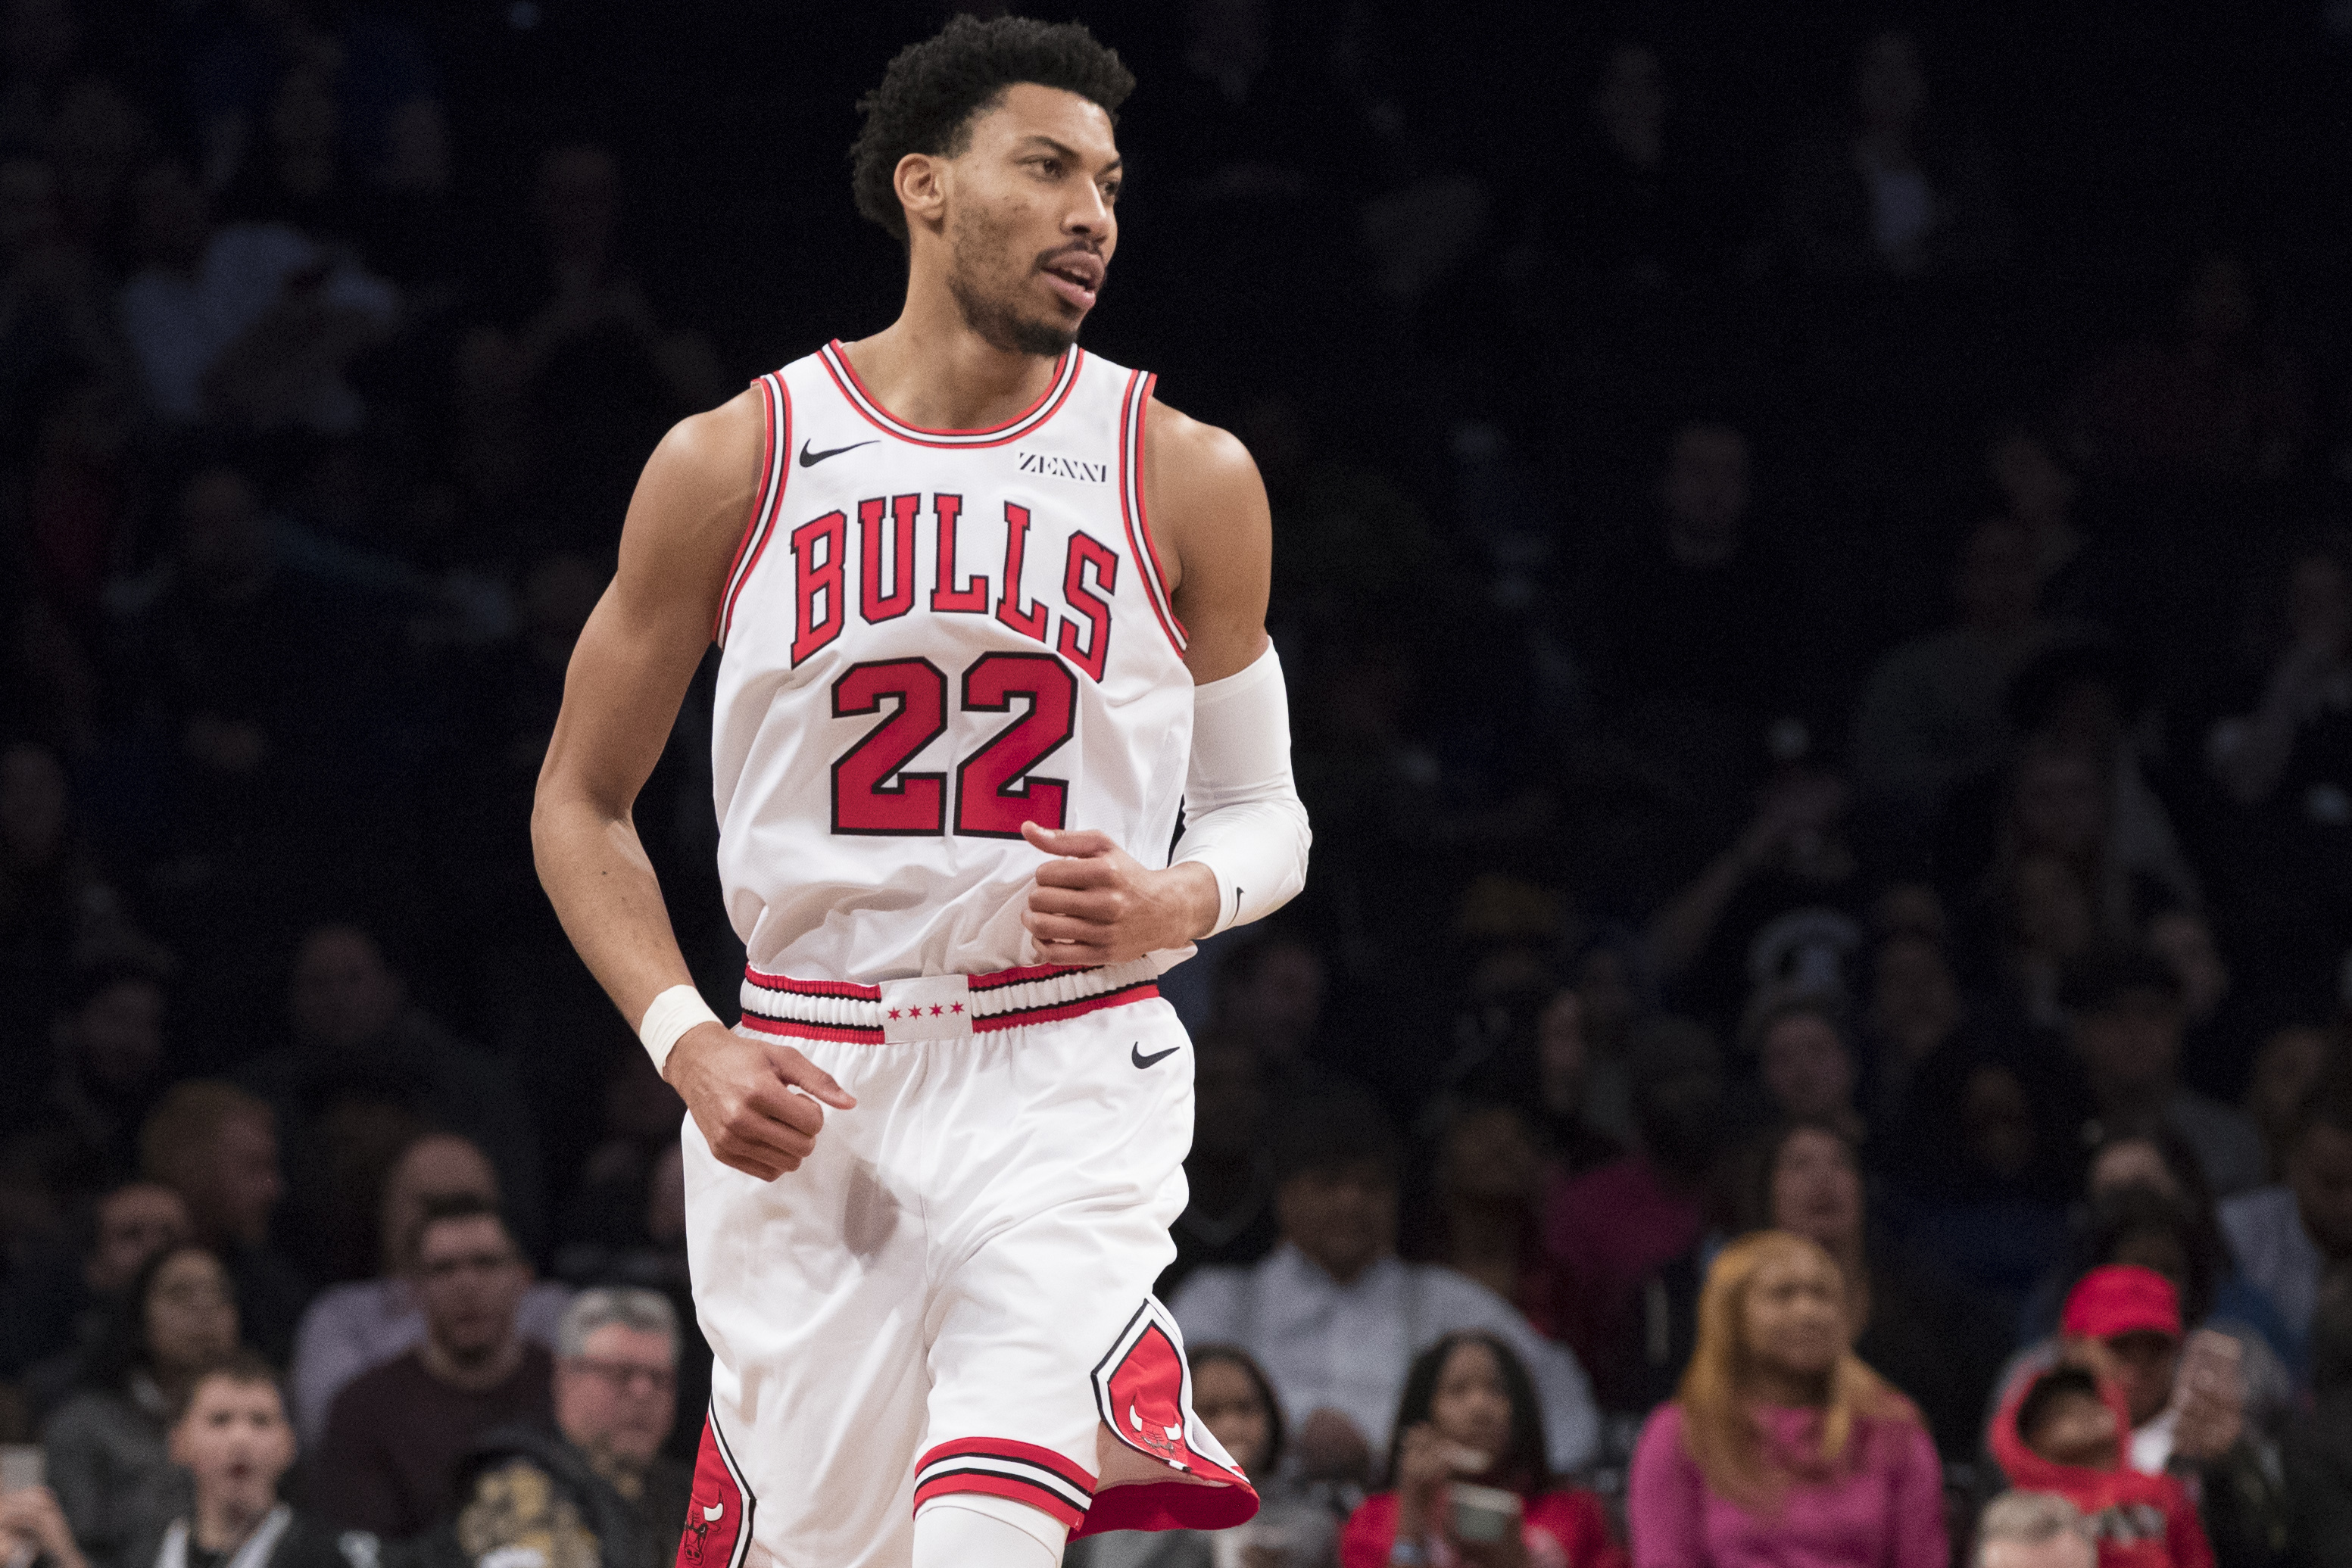 """""""For us we just got to get our mojo, get our swag back to the way we were playing in training camp, in the preseason,'' the Bulls' Otto Porter said."""